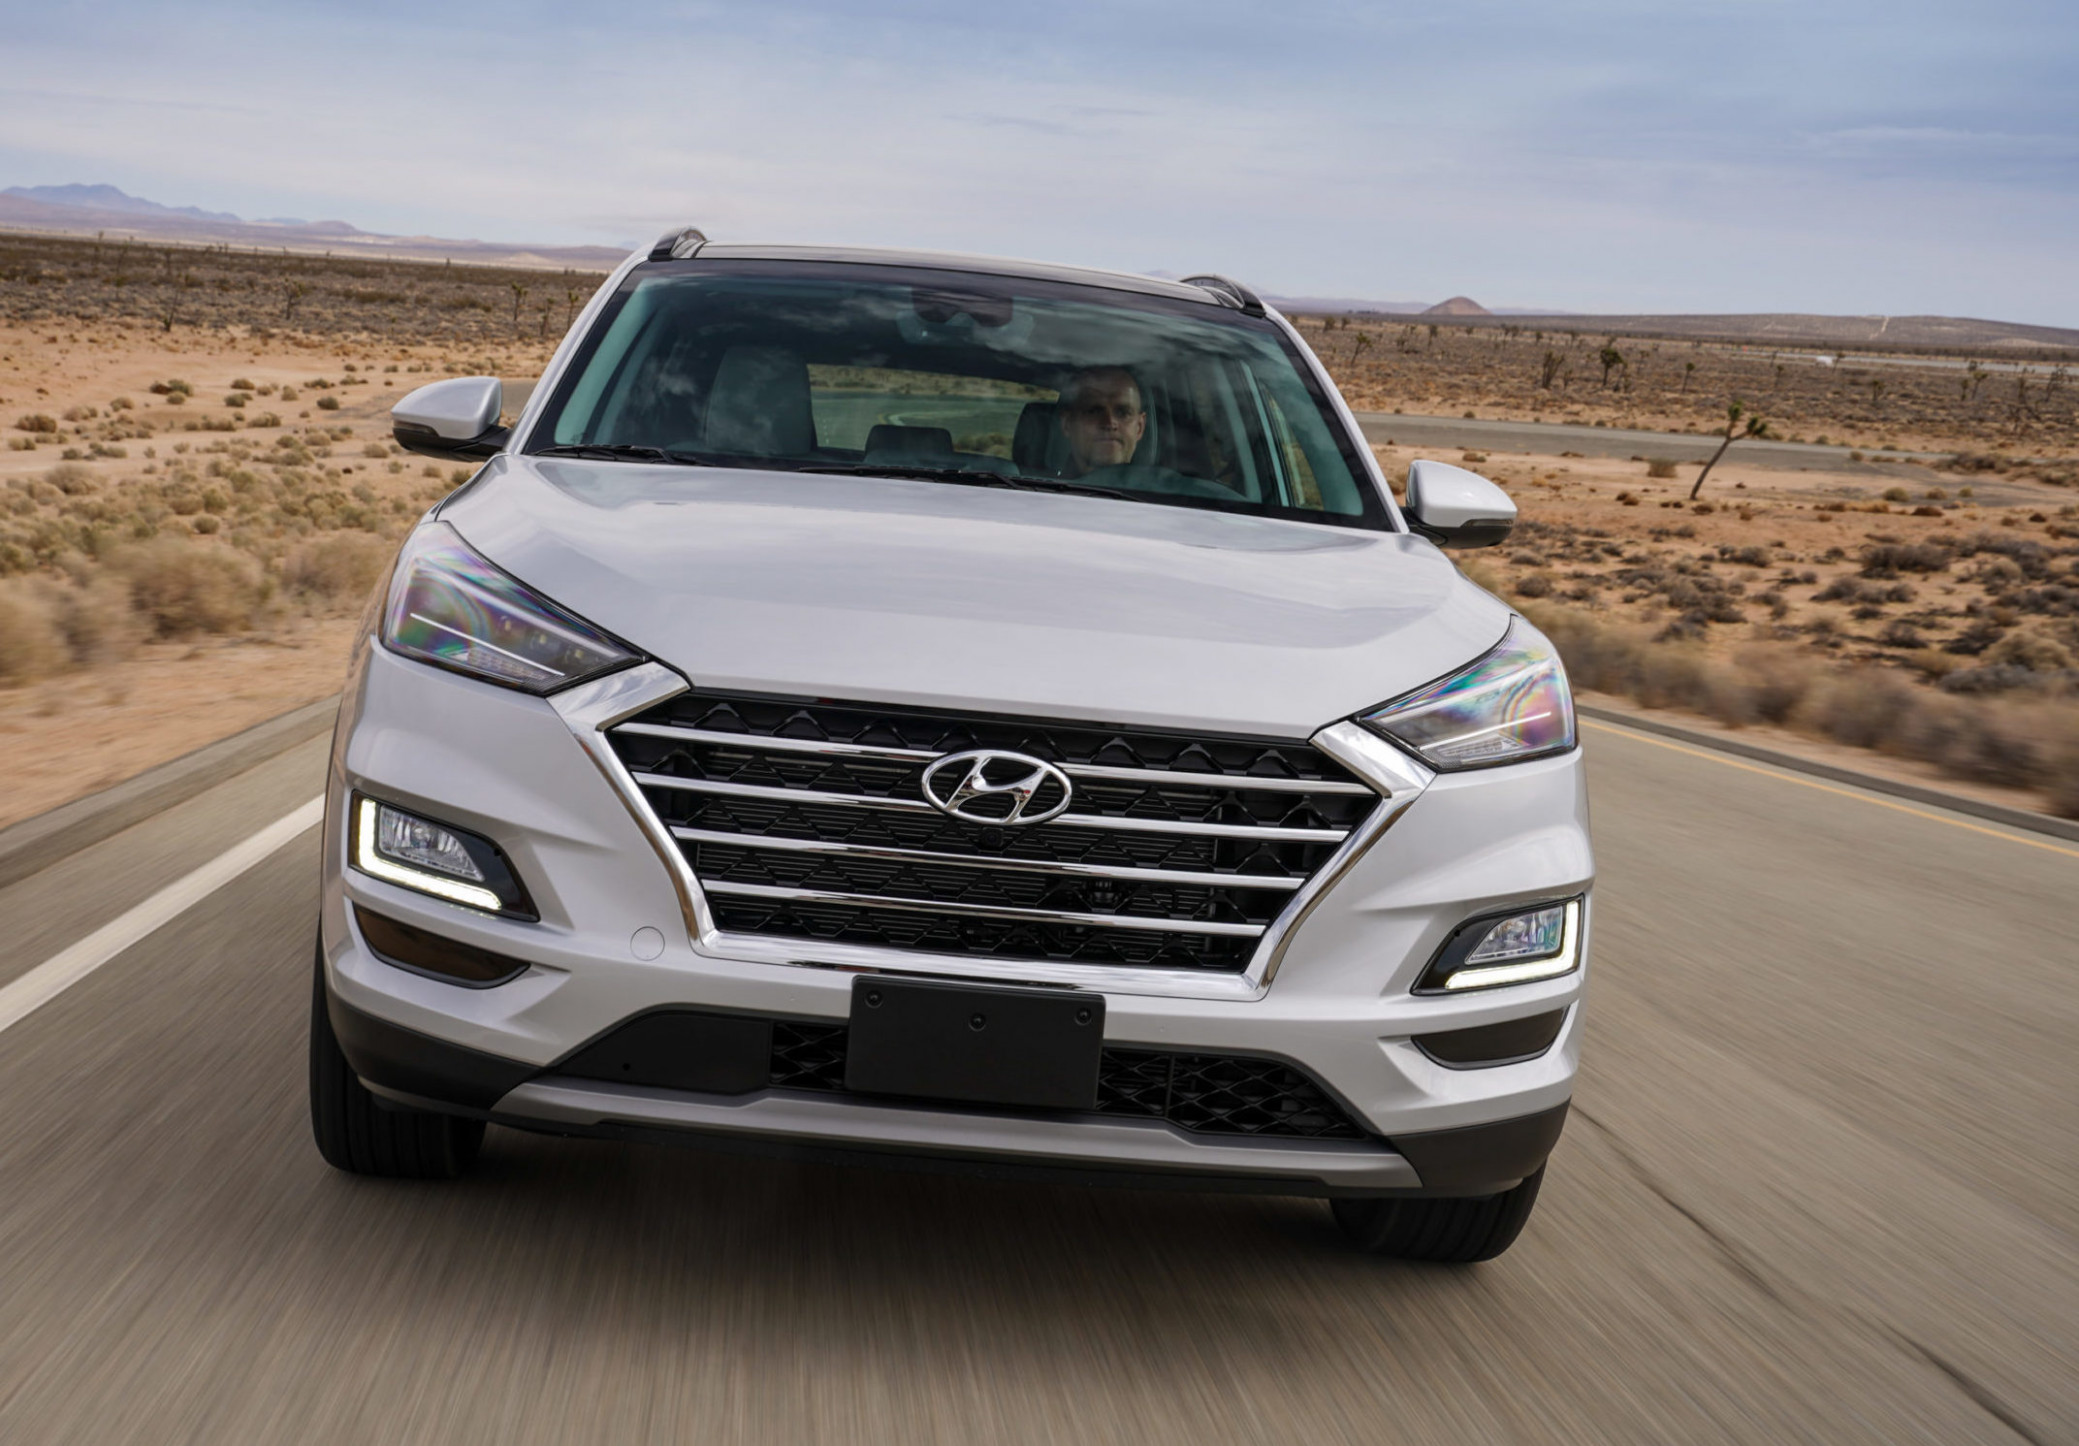 Importer DTI must pay OEM $6M, can't sell grey-market Hyundai ...